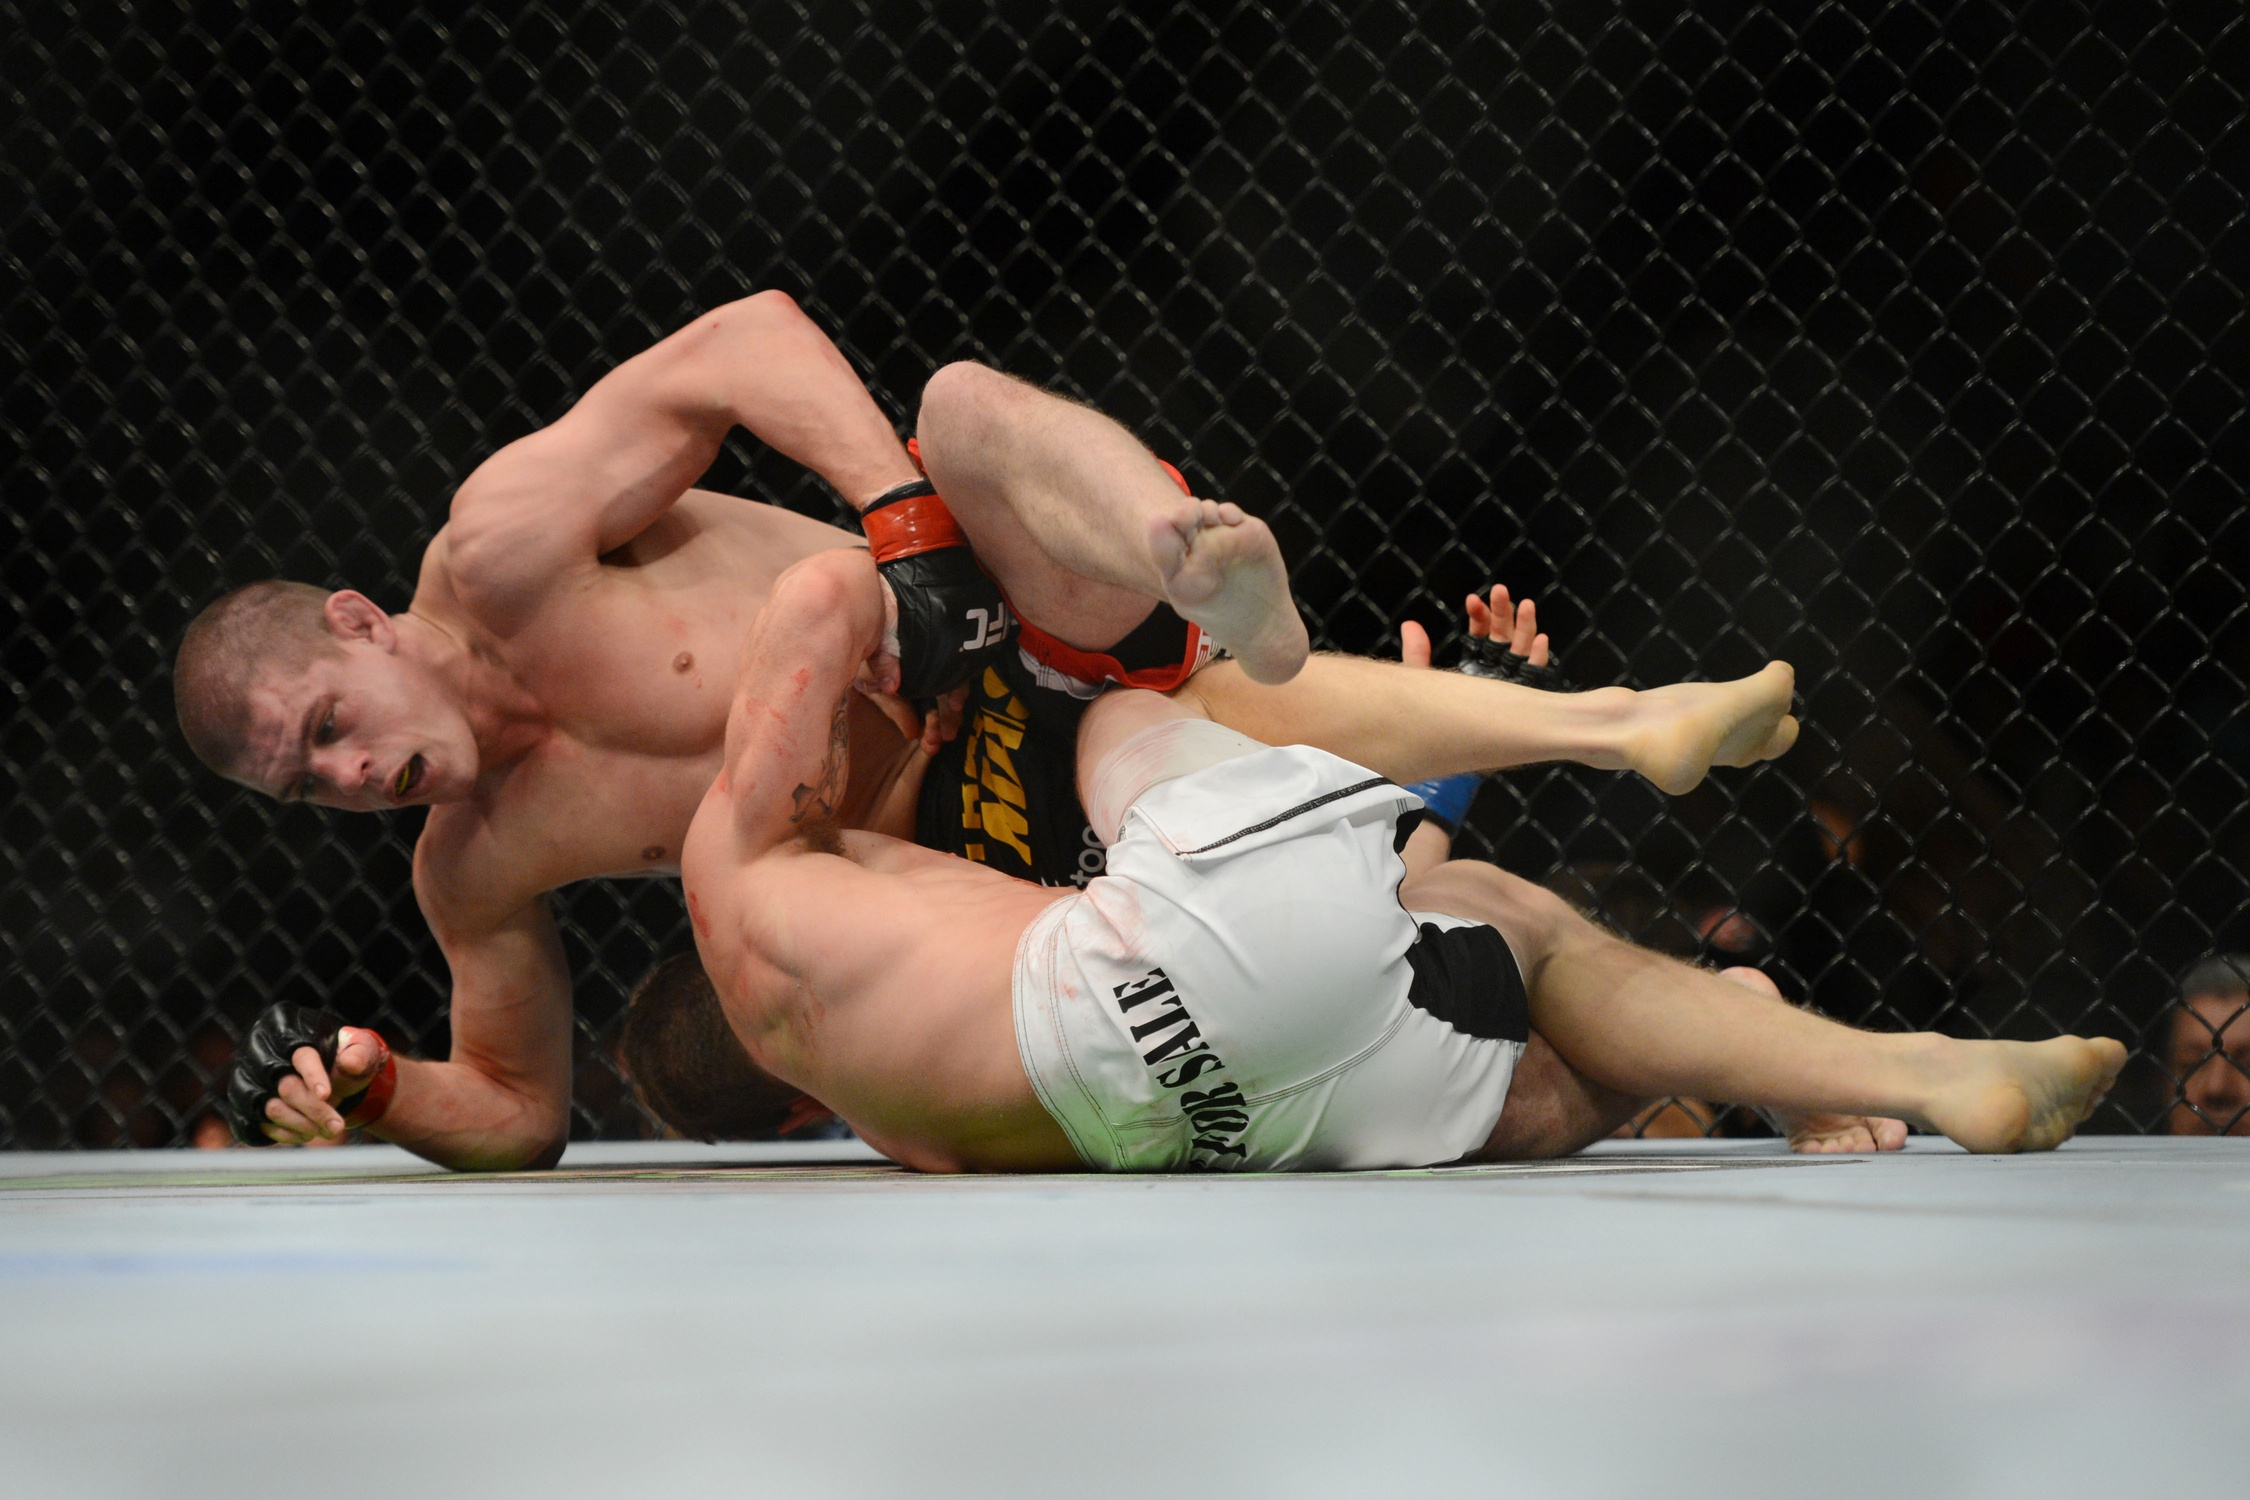 Mainstream Mixed Martial Arts Leads To Decline In Sponsorship Dollars